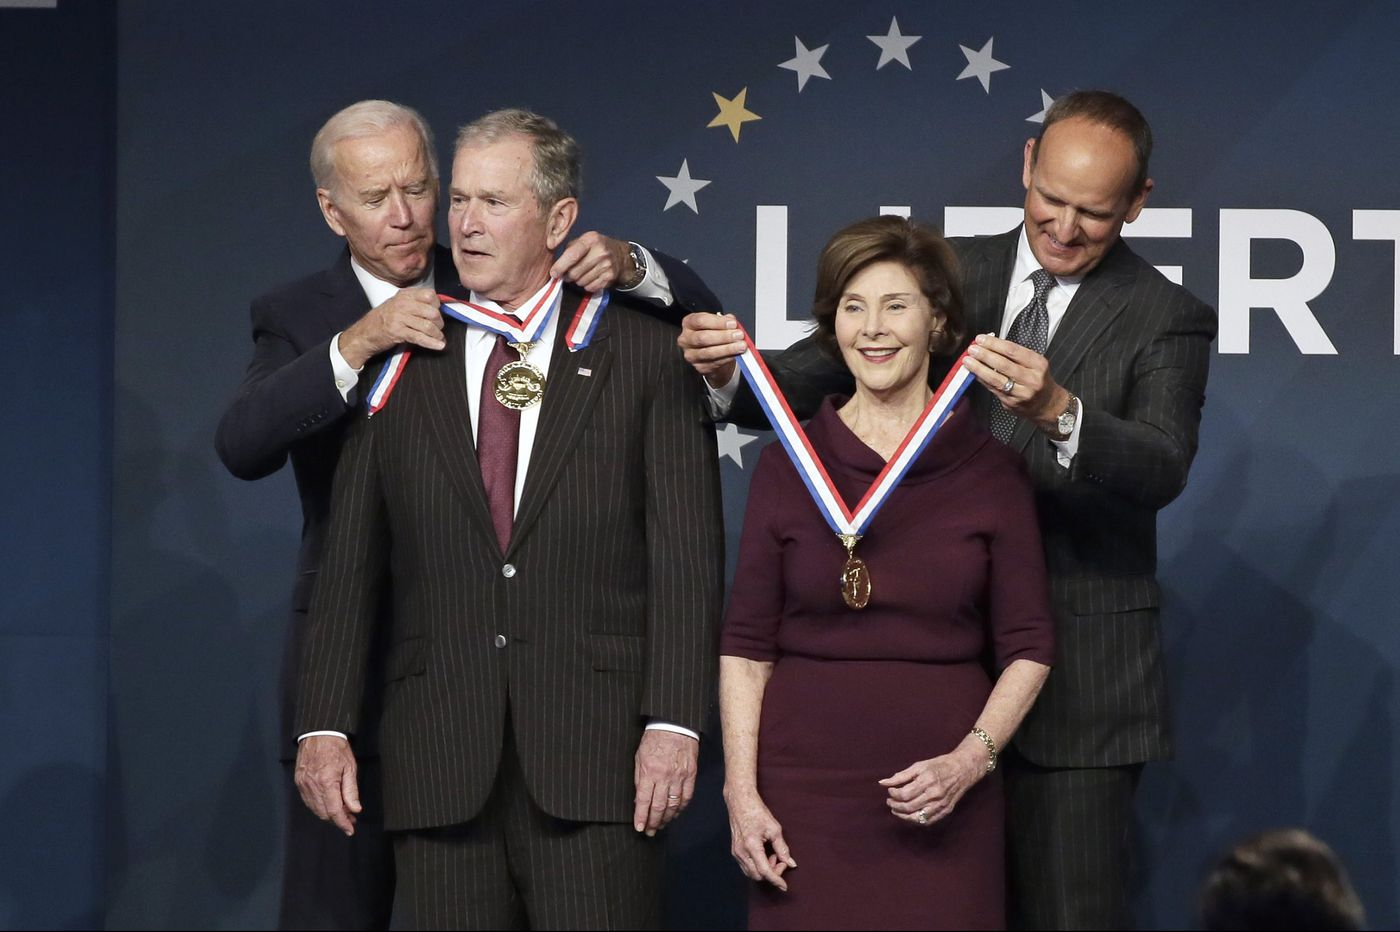 Ex-President George W. Bush, wife Laura receive Liberty Medal amid protests